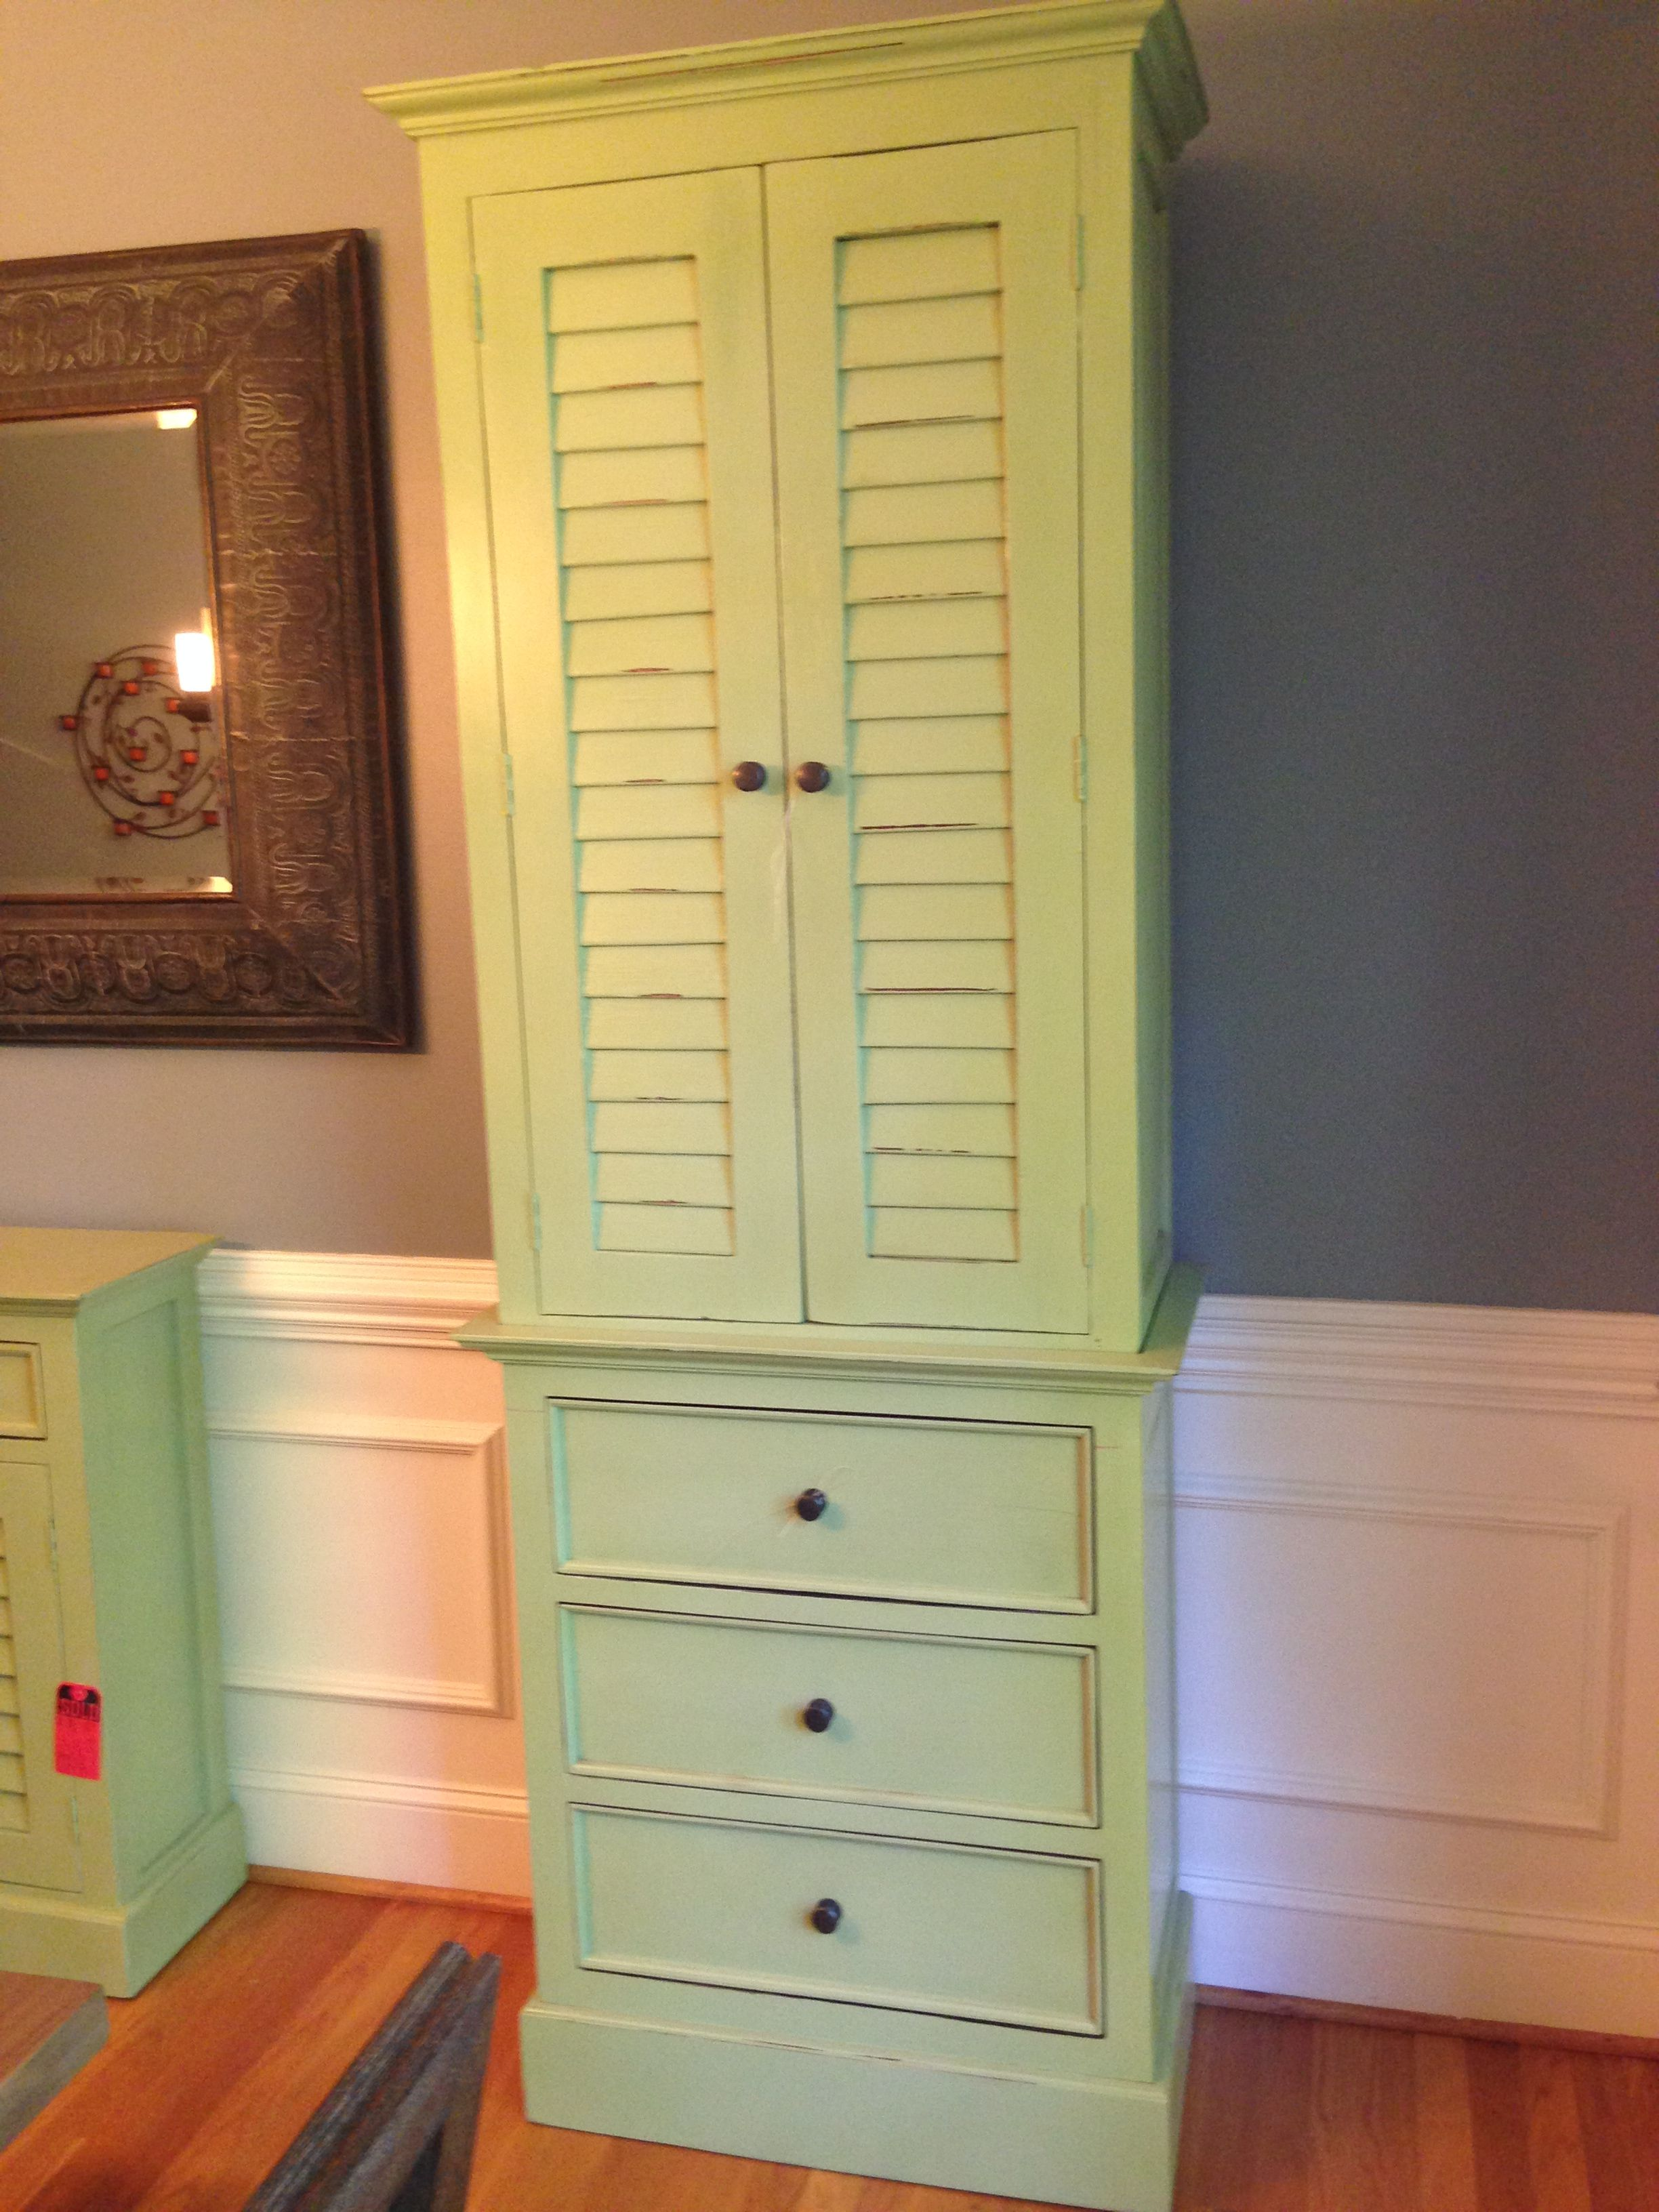 Tall Skinny Dresser Armoire Storage Wooden Armoire Holiday Room [ 3264 x 2448 Pixel ]